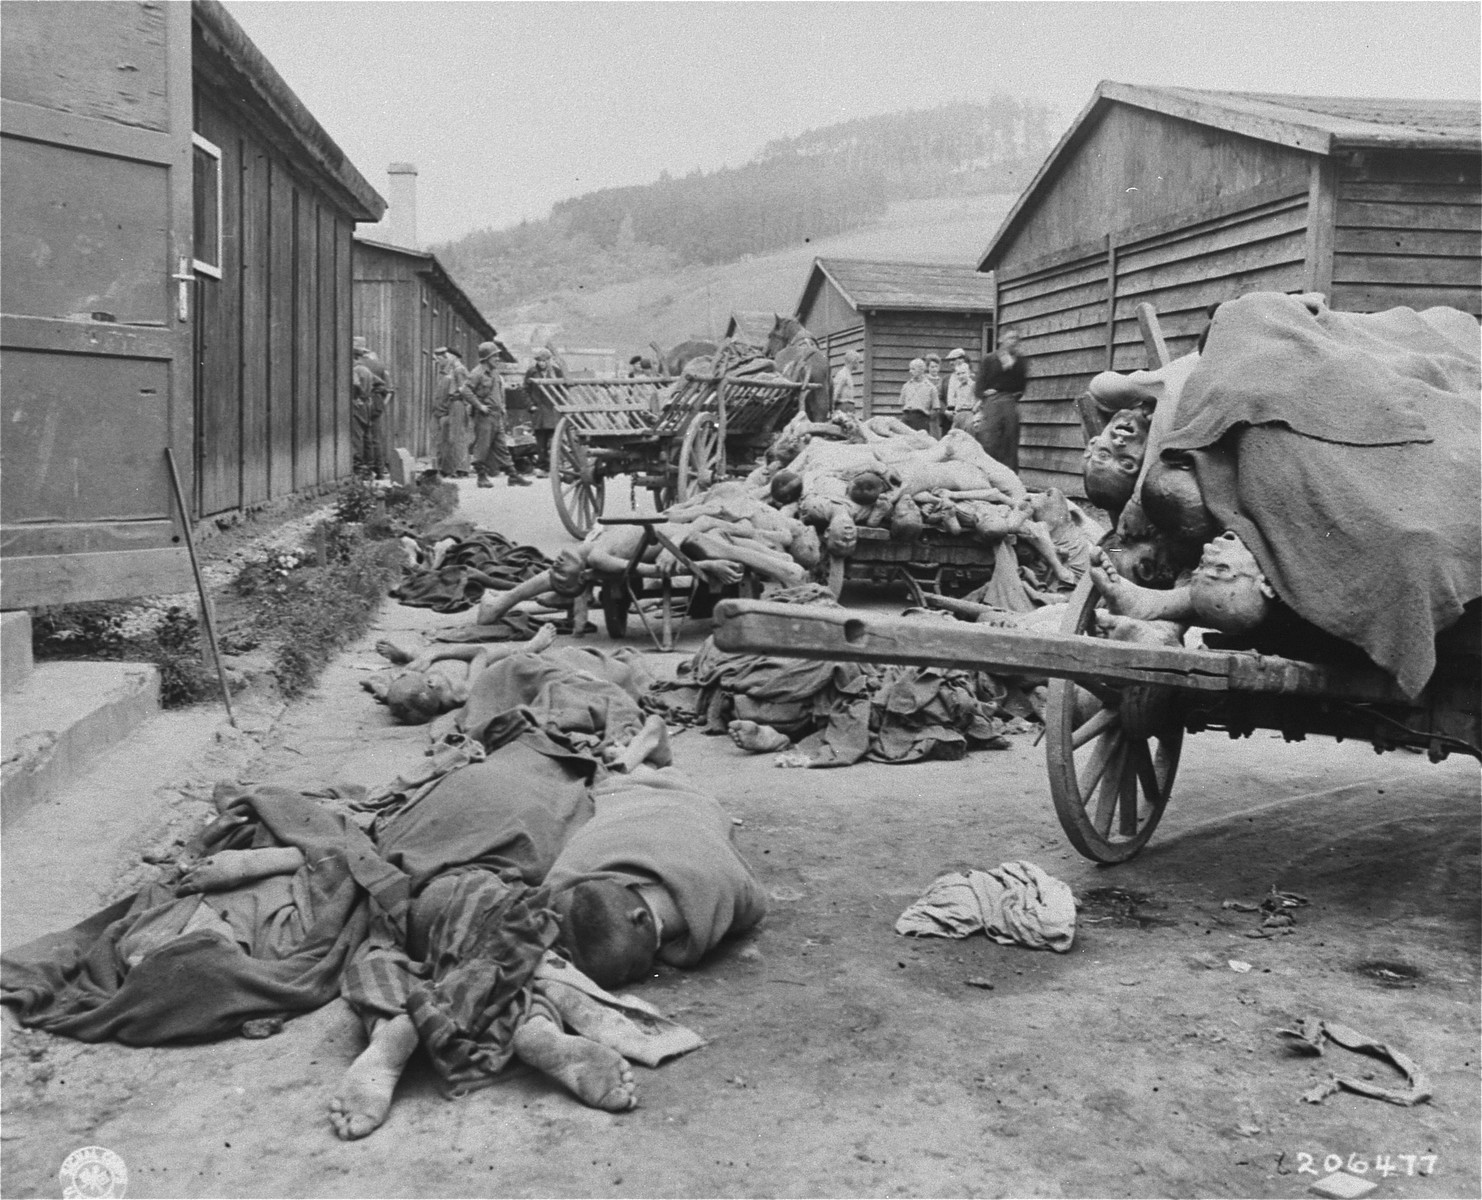 "Corpses in Gusen prior to their removal and burial by Austrian civilians.  The original Signal Corps caption reads,  ""GUSEN CONCENTRATION CAMP The Gusen concentration camp near Linz, Austria, was captured by troops of the 11th Armored Division, Third U.S. Army.  It was the scene of lingering death, hard work, bestiality and mass exterminations.  The total number of prisoners killed in Gusen, and the maximum number held in it, were facts not known at the time these photographs were taken May 12, 1945.  Even after the arrival of the American troops, the inmates continued to die from advanced starvation at the rate of 100 each day.  Inmates told investigators the camp was primarily for political prisoners from all over Europe.   Investigators have learned, however, that at one time an unknown number of American flyers were killed at Gusen.  The prisoners worked in nearby stone quarries until they were too weak to stand, then they were killed by the Germans. Gusen was equipped with a gas chamber, a crematory and those usual efficient means the Germans used for disposal of their murdered victims.  Third Army troops found dead bodies in filthy beds, garbage dumps, streets, carts, storage rooms and in refrigerated rooms where some were placed to await cremation.  German civilians were forced by the Americans to remove the decomposing bodies for decent burial.  BIPPA                                                         EA 66777  THIS PHOTO SHOWS:  Some of these men died in a gas chamber, some from starvation in bed.   The bodies were removed by German civilians and loaded into wagons for decent burial.  U.S. Signal Corps Photo ETO-HQ-45-46598. SERVICED BY LONDON OWI (INNER FULL) CERTIFIED AS PASSED BY SHAEF CENSOR"